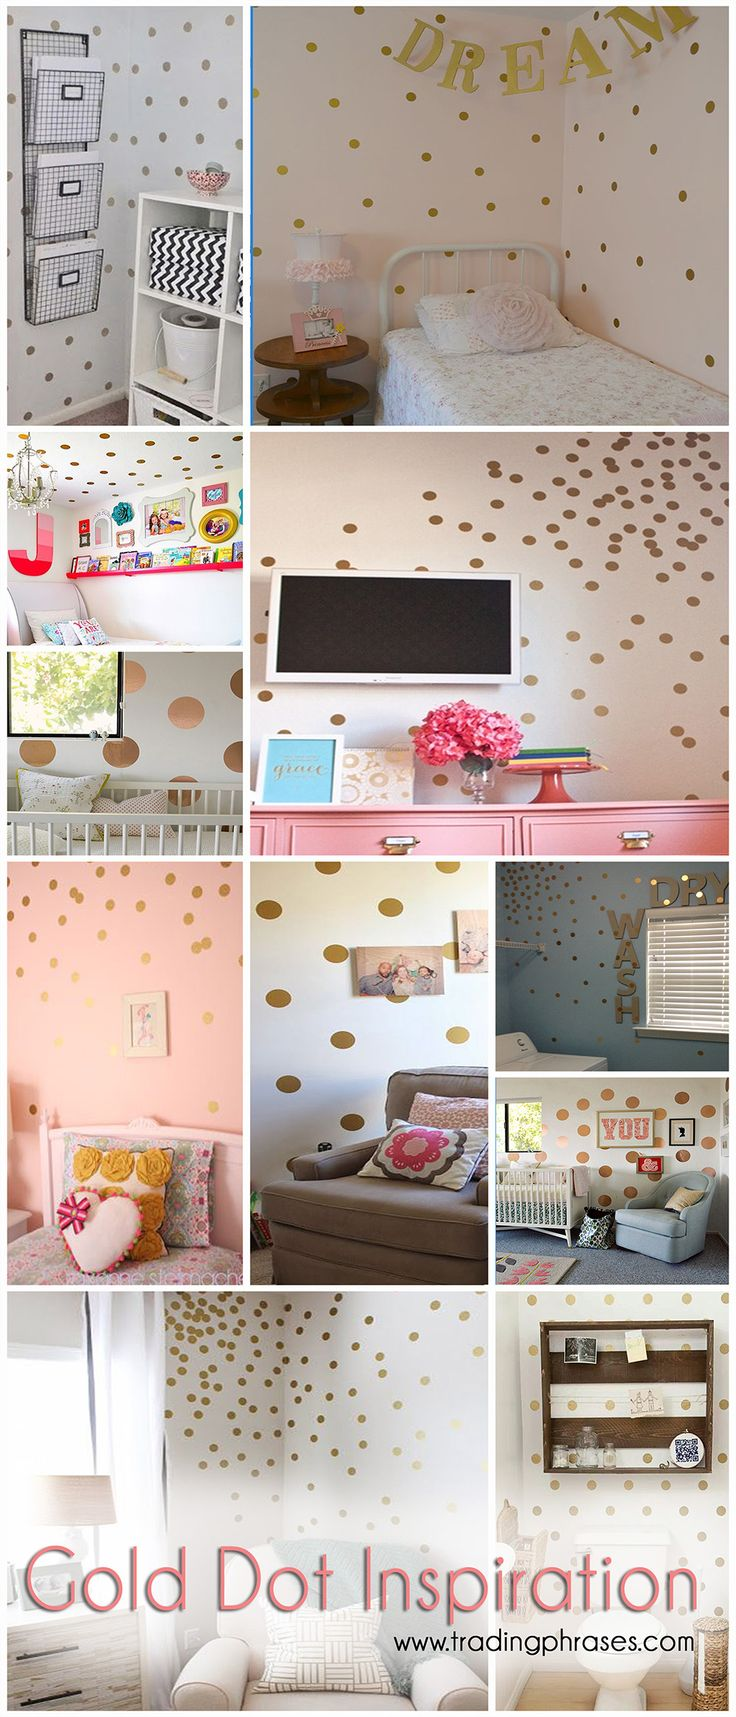 Adorable gold dots or confetti dot decals for walls and furniture. Love this idea!